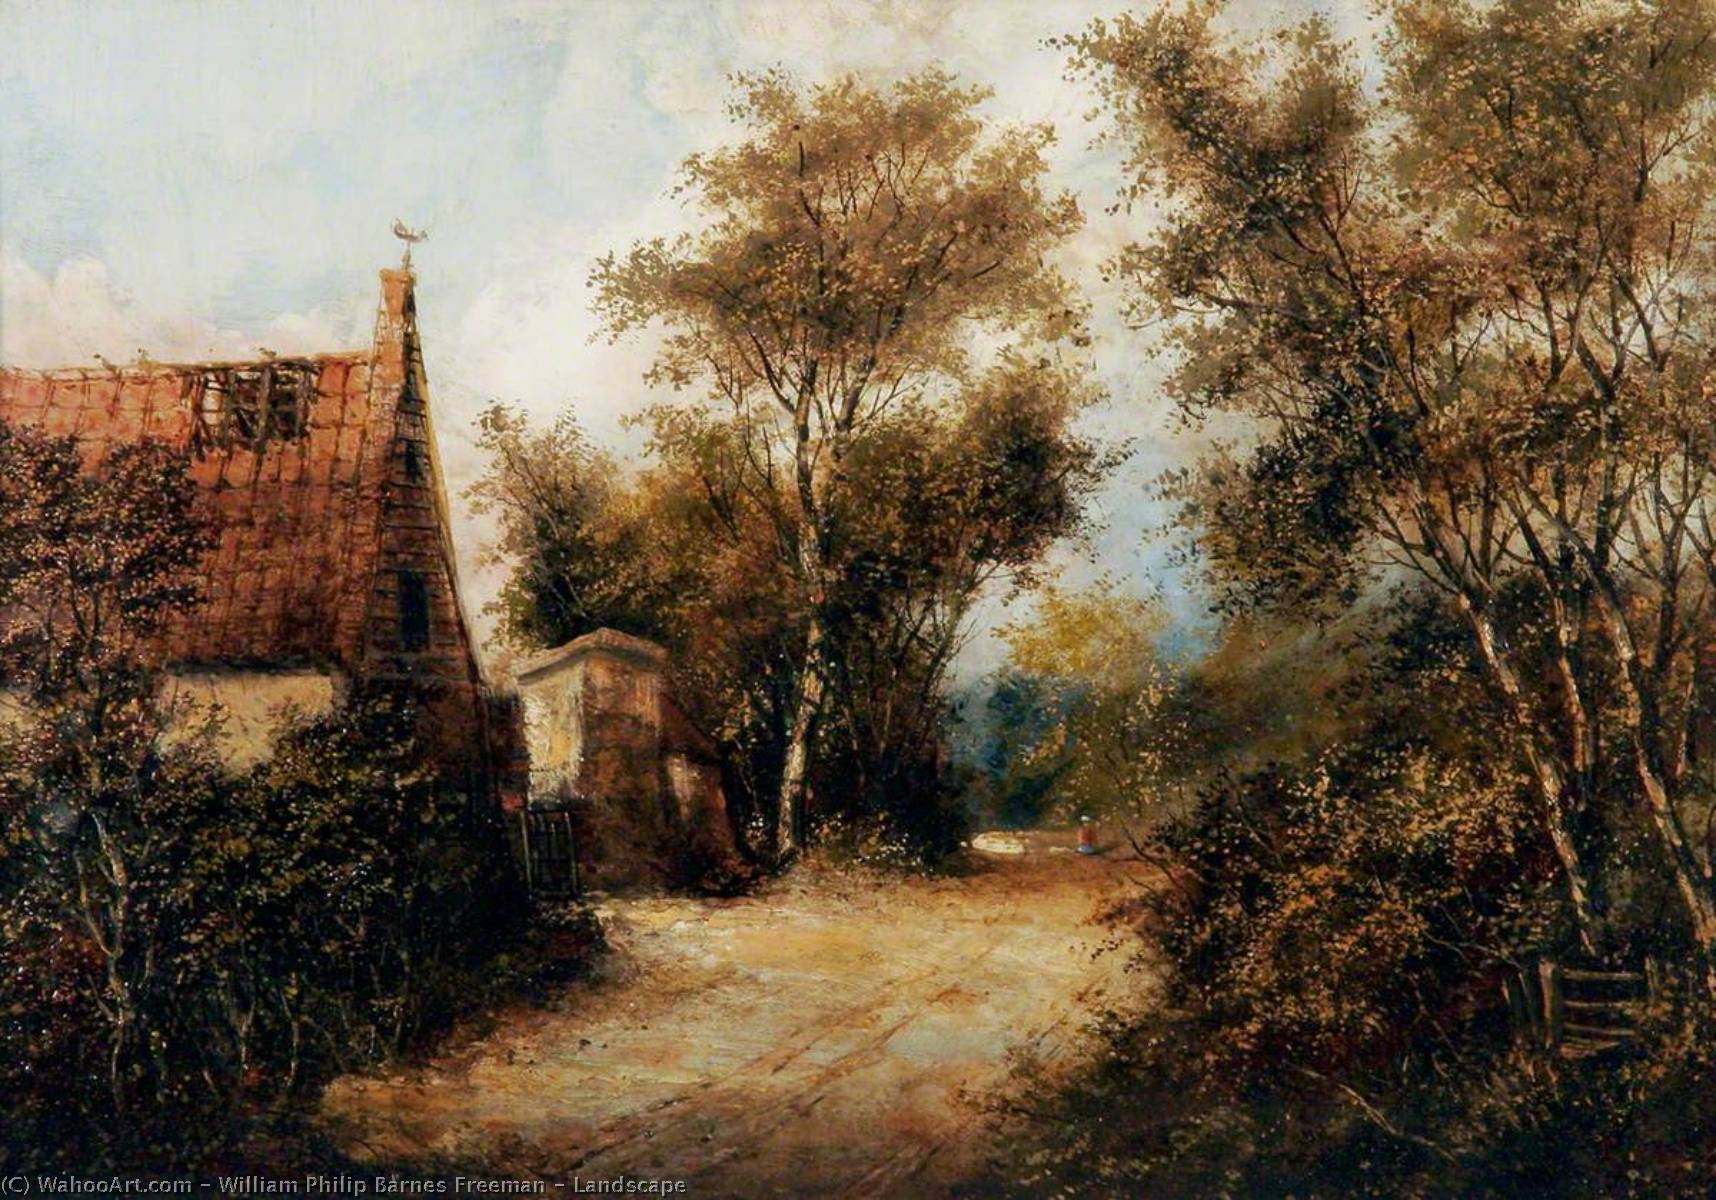 Landschaft ein von William Philip Barnes Freeman | Malerei Kopie | WahooArt.com